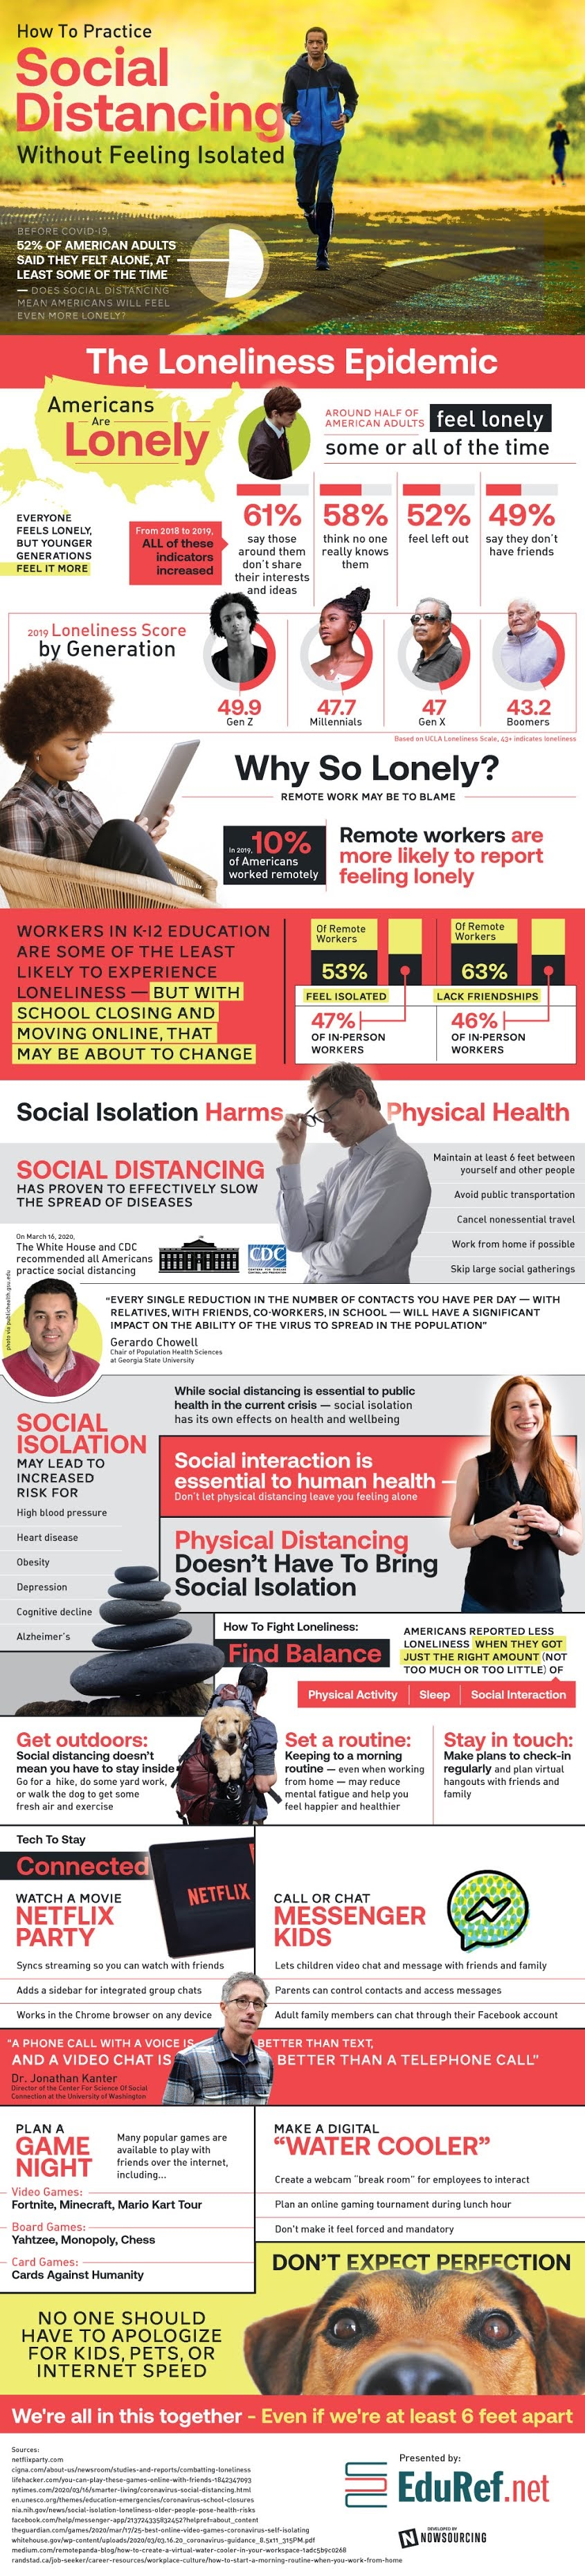 Social Distancing Without Isolation #infographic